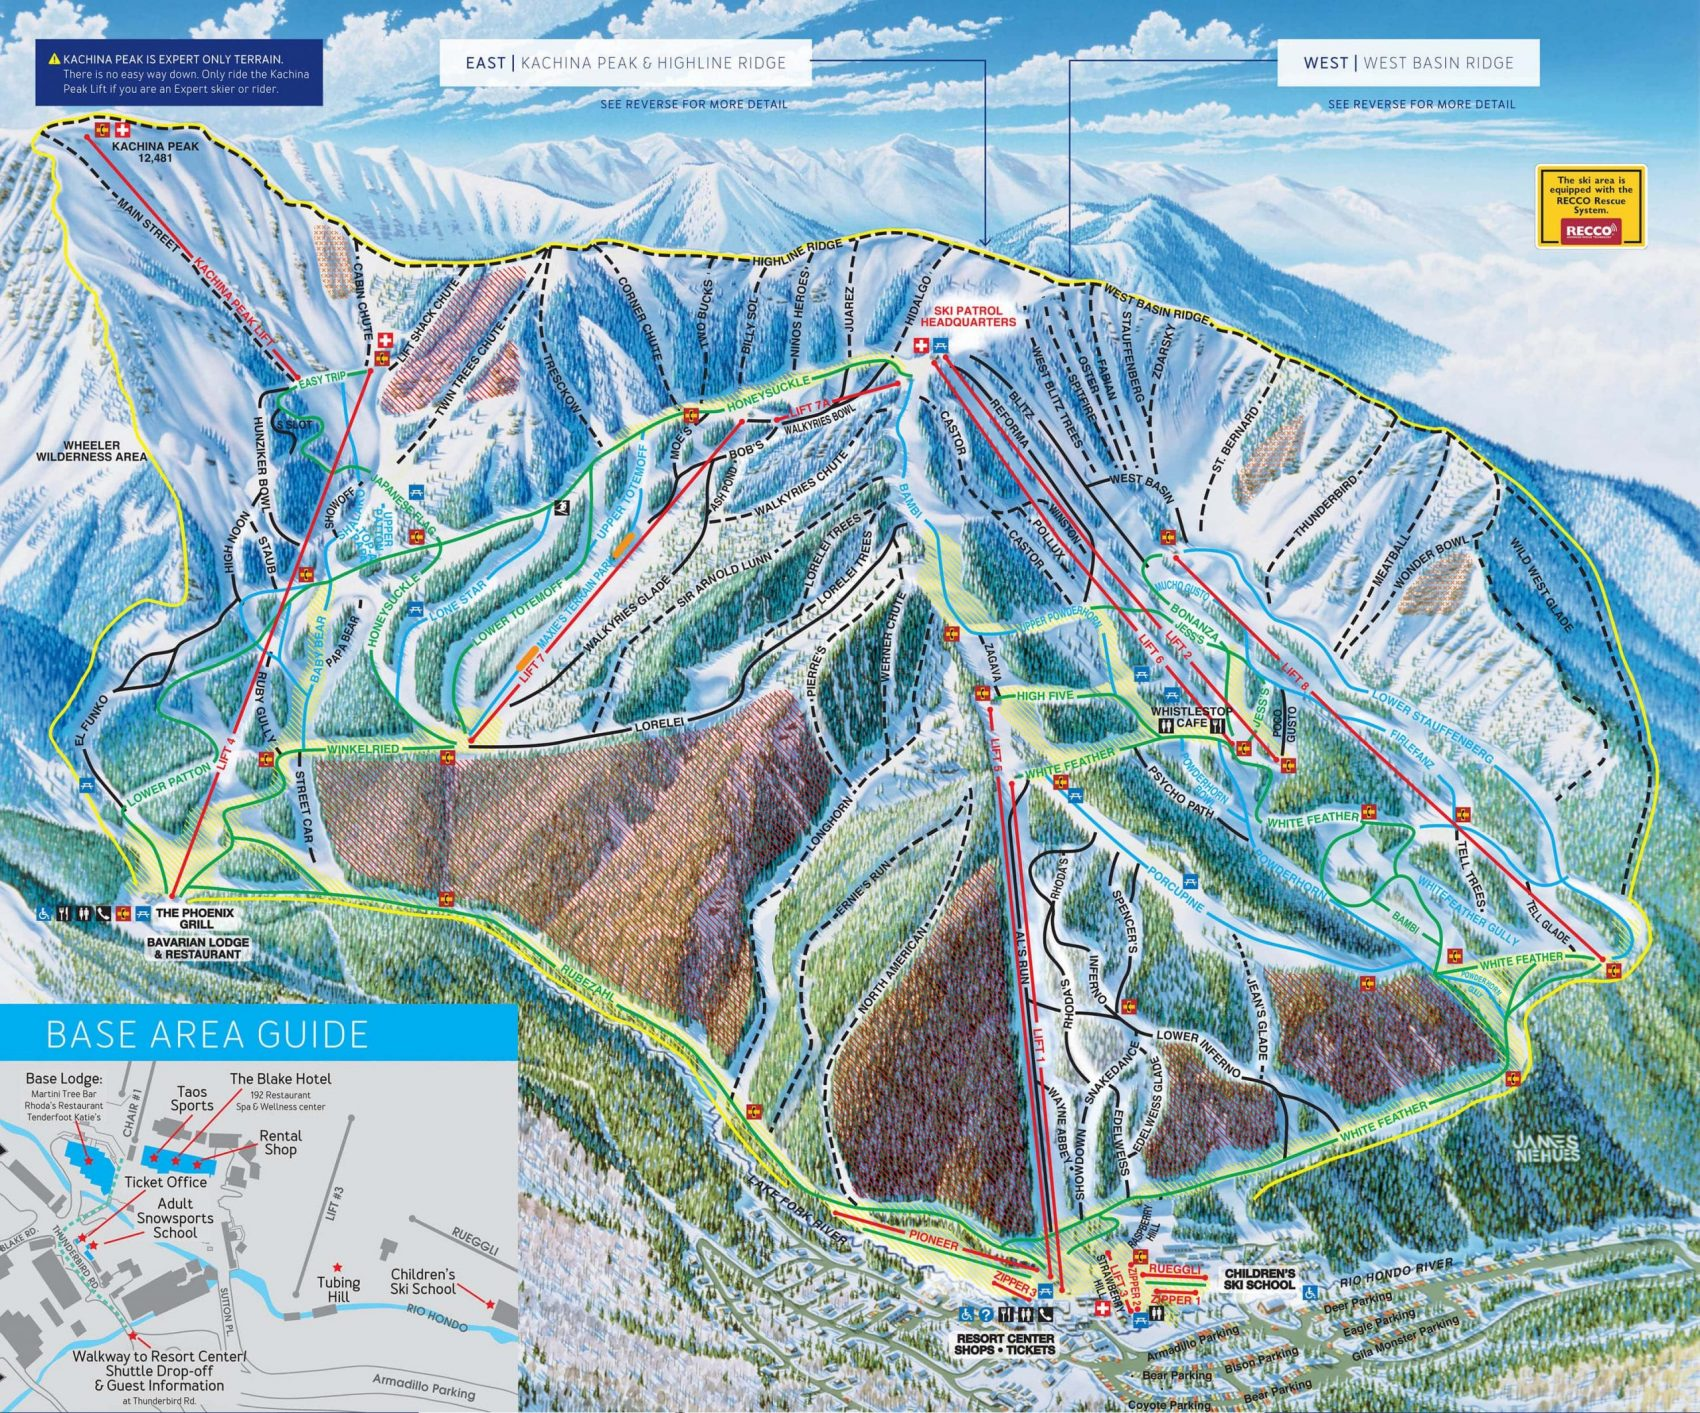 taos ski valley, New Mexico, trail map